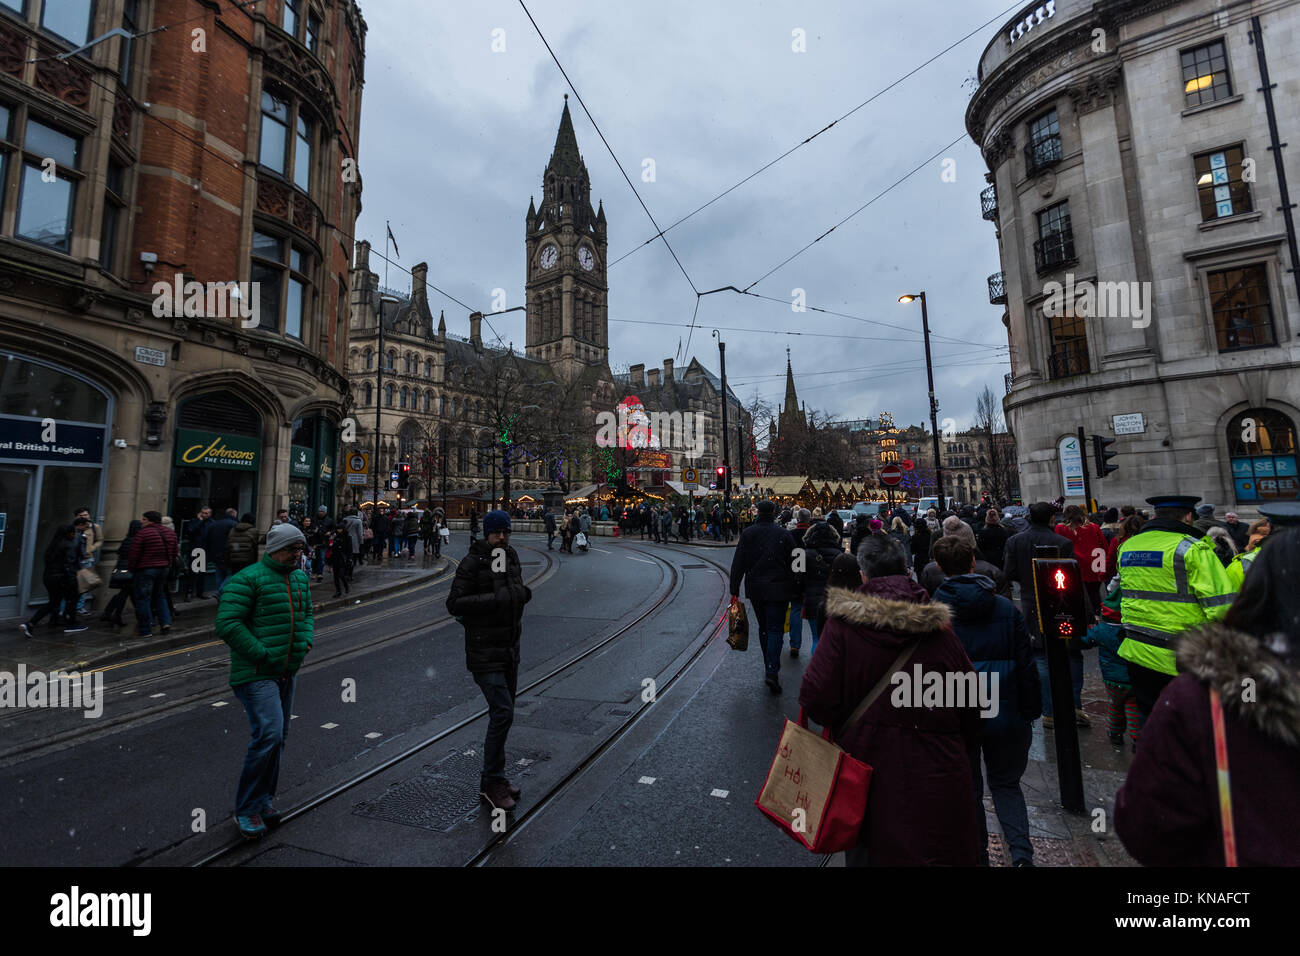 Shoppers And Revellers At Manchester Christmas Markets Around The City, Manchester, England, UK Stock Photo